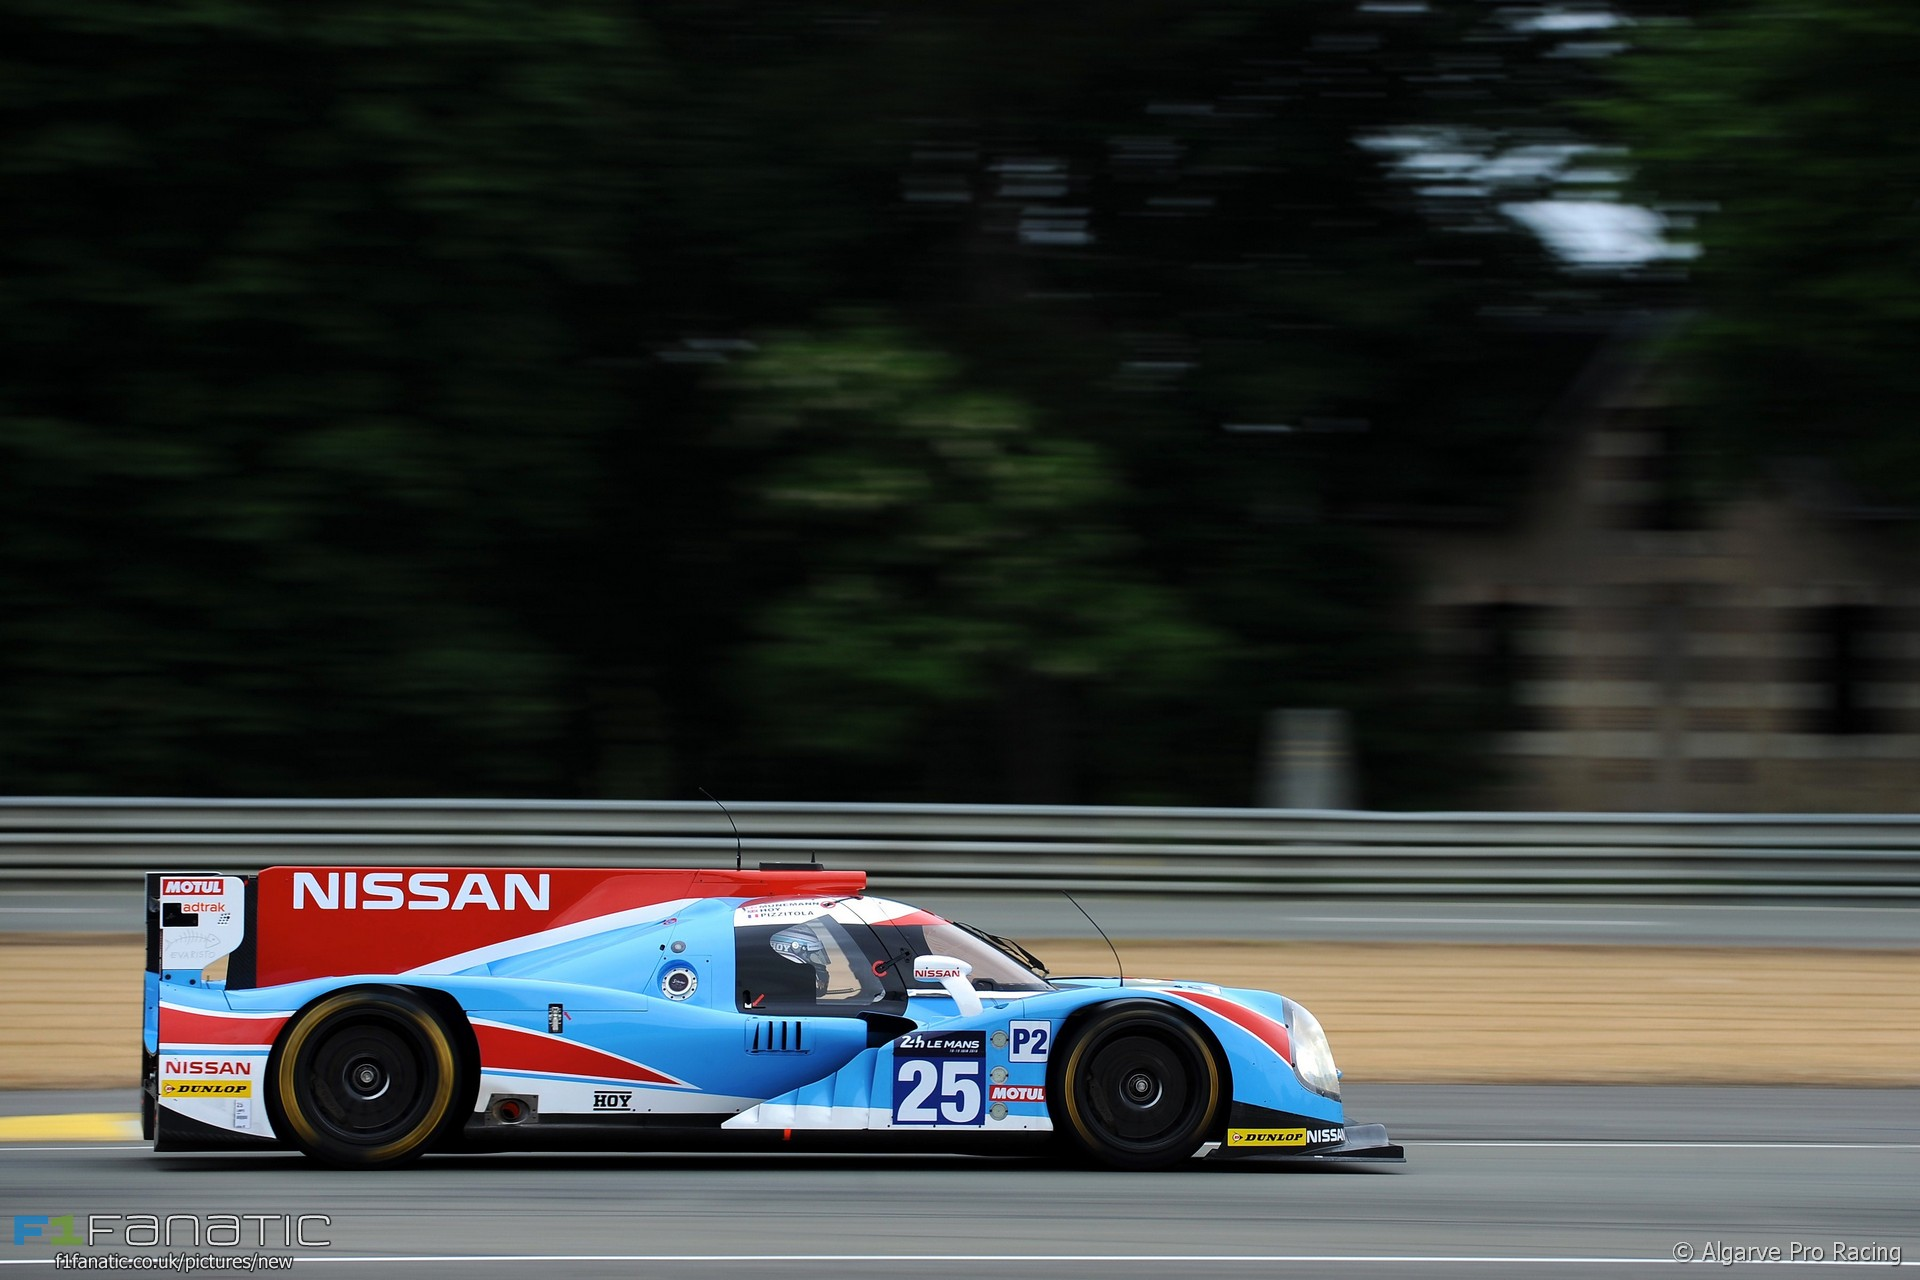 algarve pro racing ligier nissan jsp2 le mans 2016 f1 fanatic. Black Bedroom Furniture Sets. Home Design Ideas